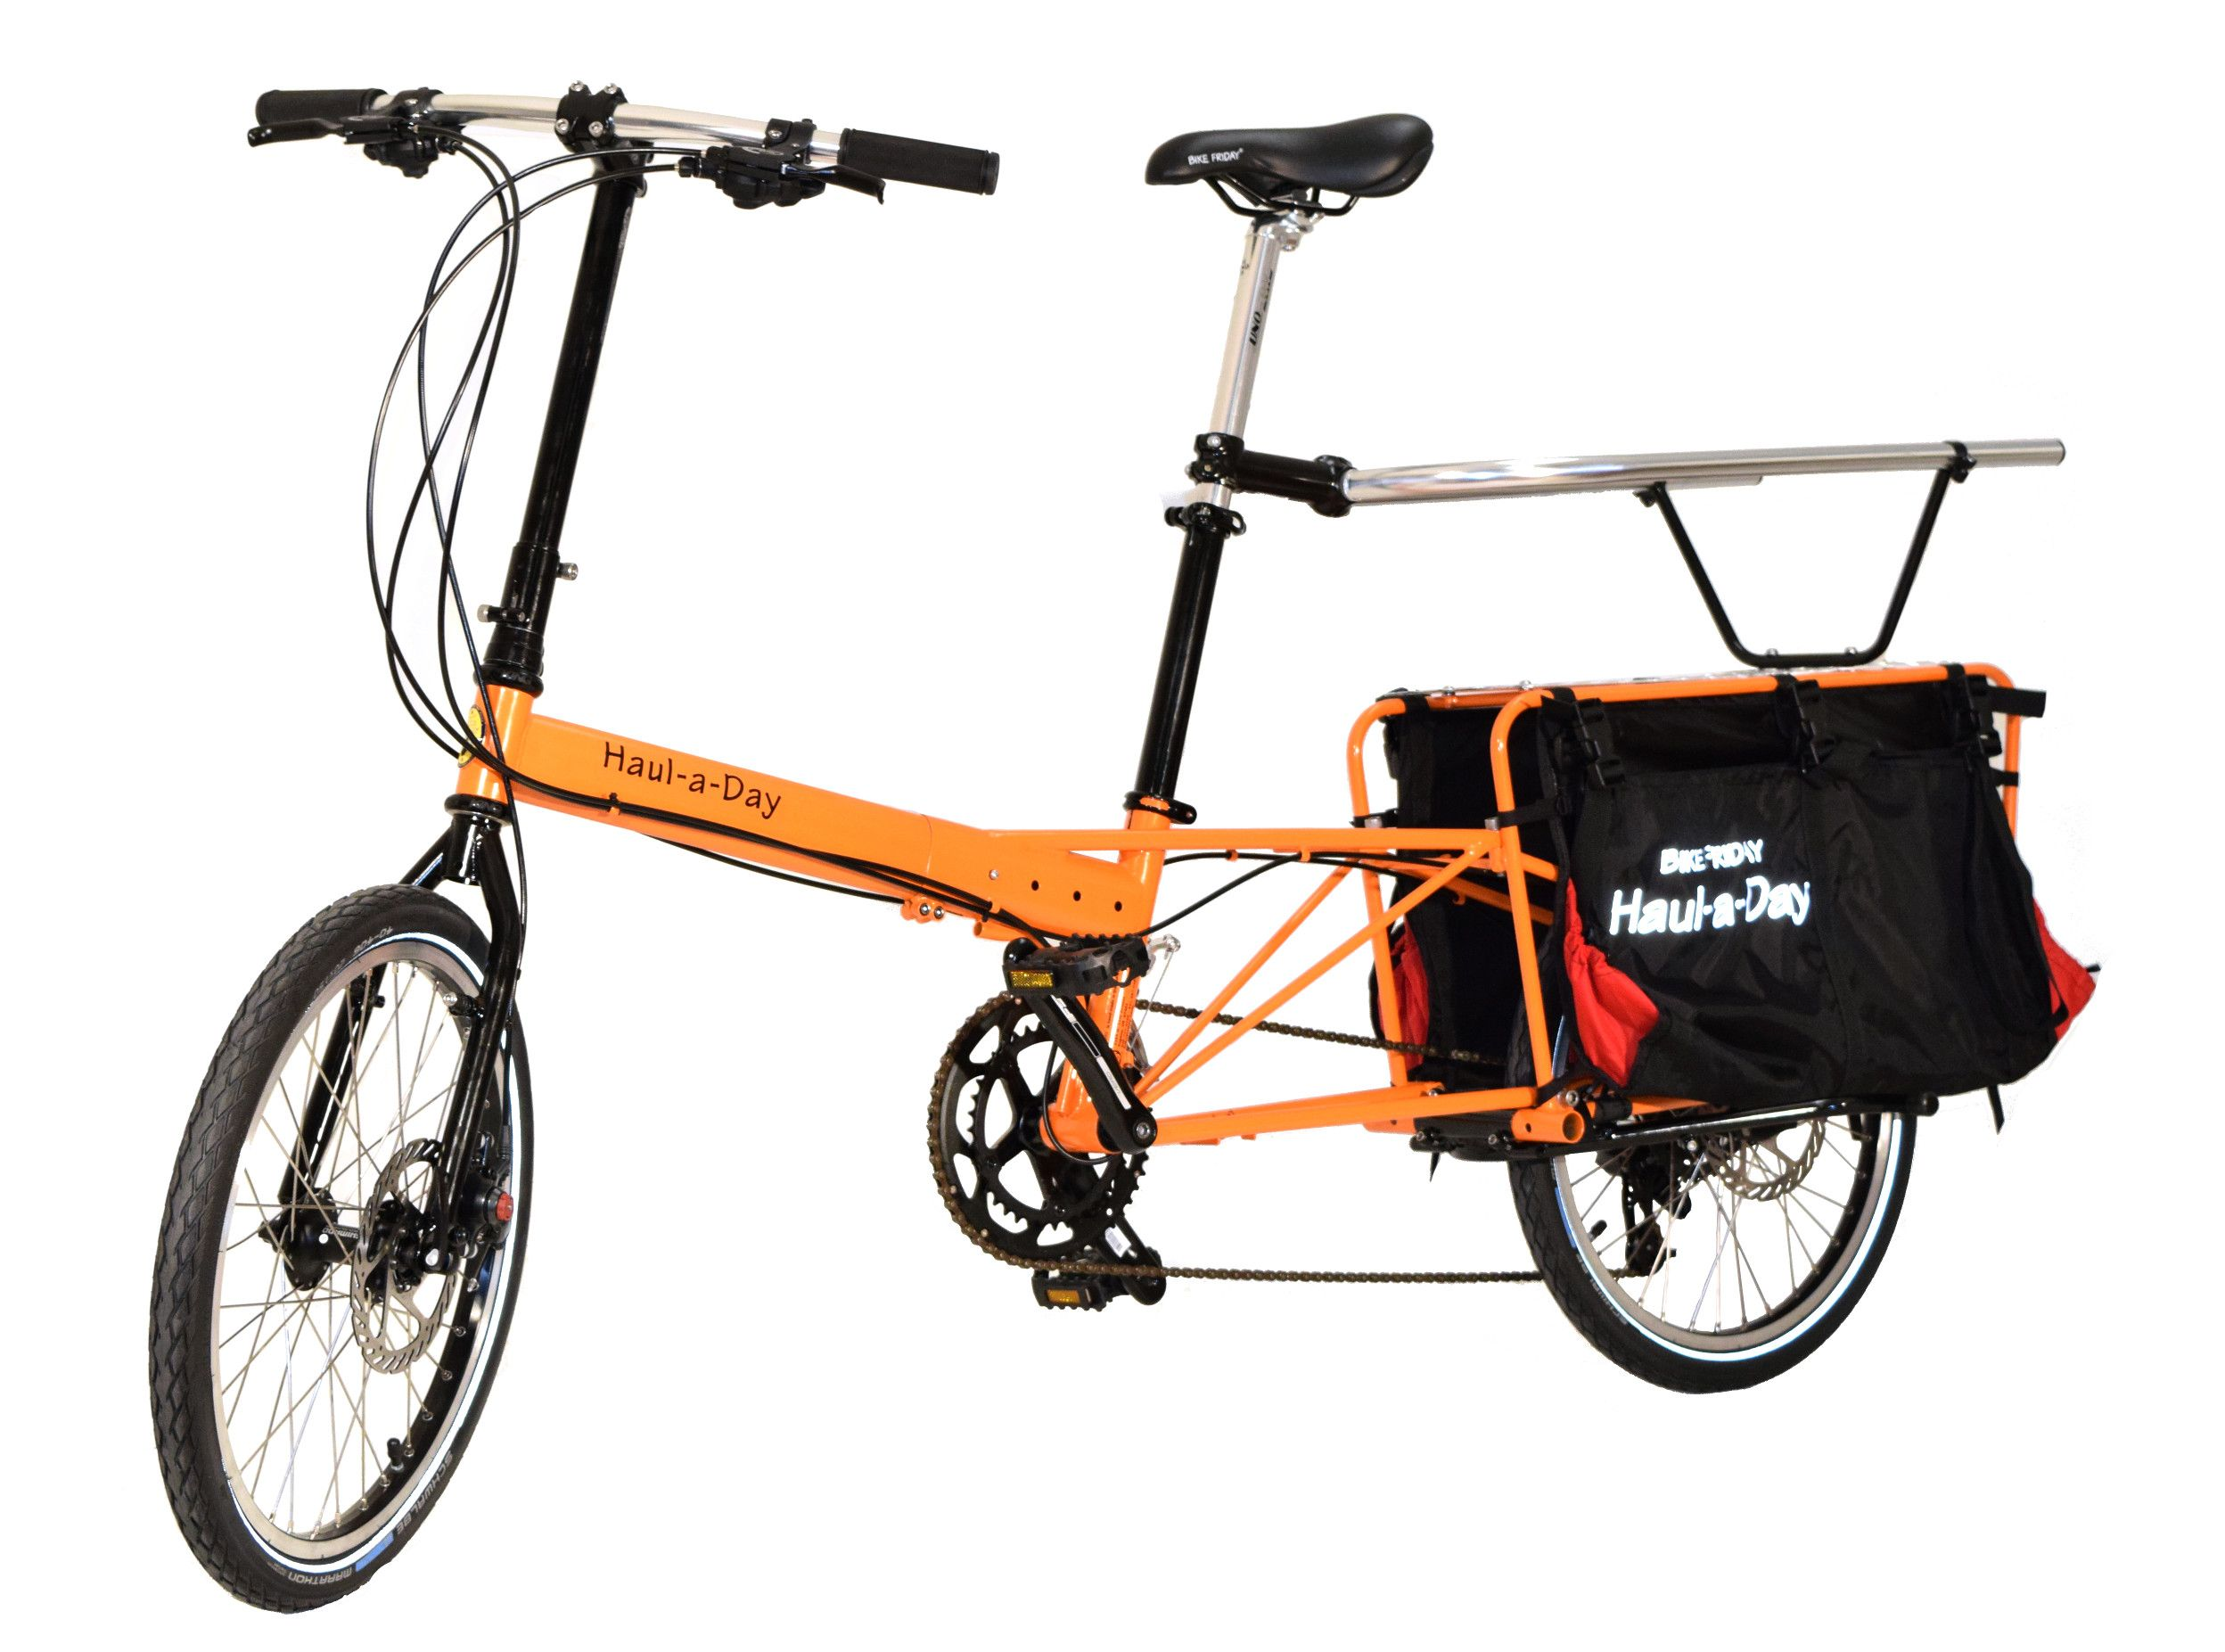 Bike Friday Launches New Cargo Bike And Hopes To Build A Bigger